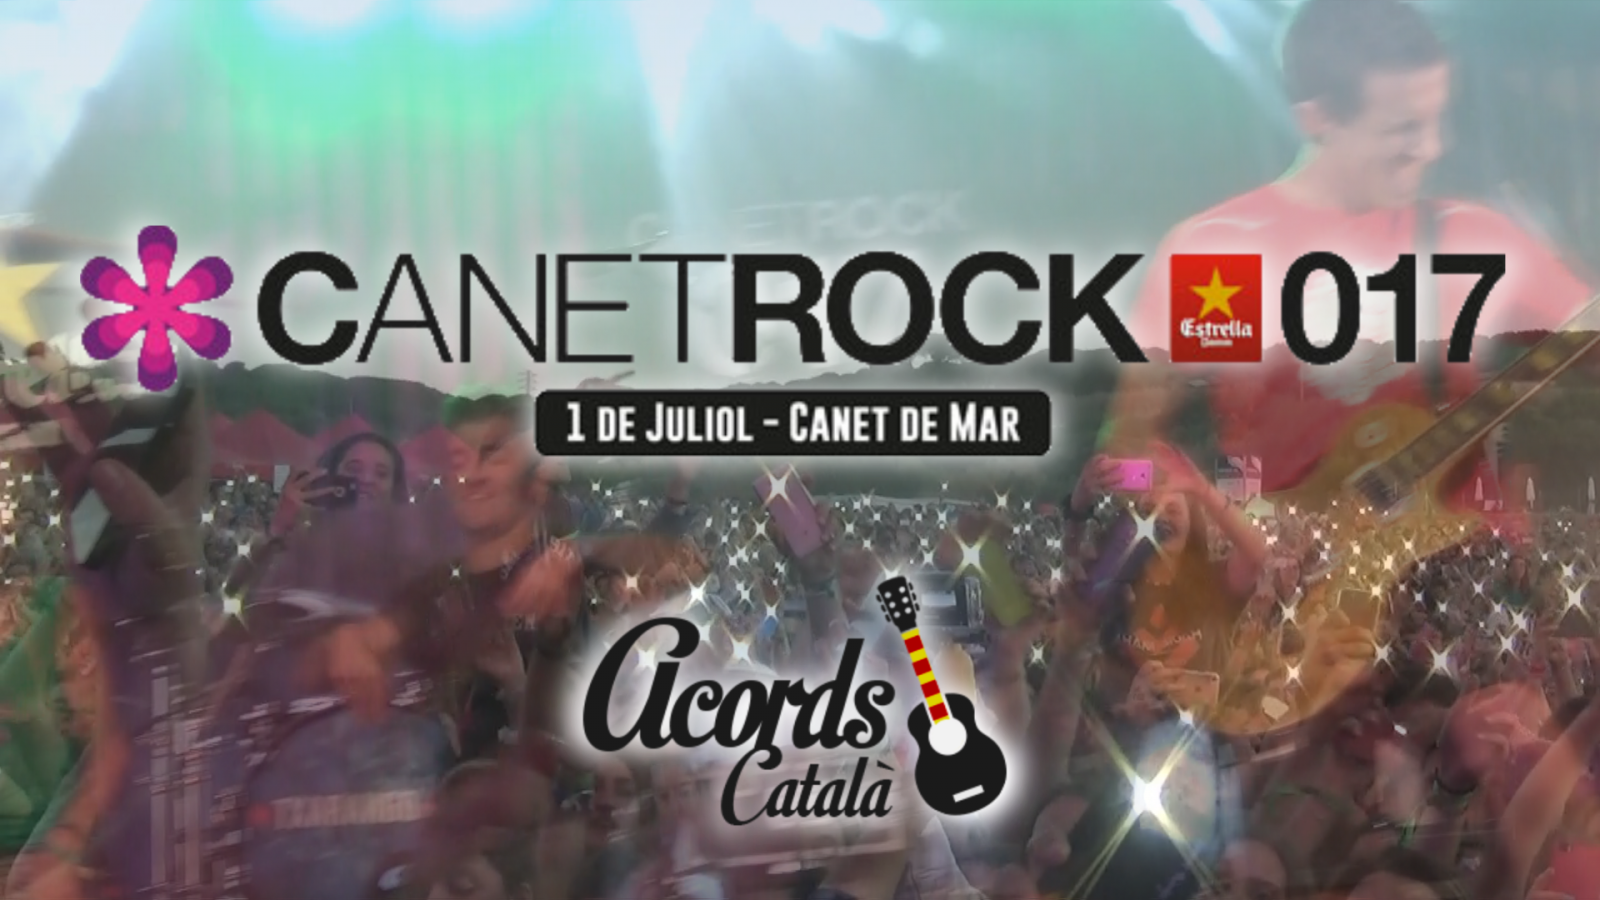 http://www.acordscatala.cat/fitxers/images/Fotos%20pels%20articles/canetrock17video.png